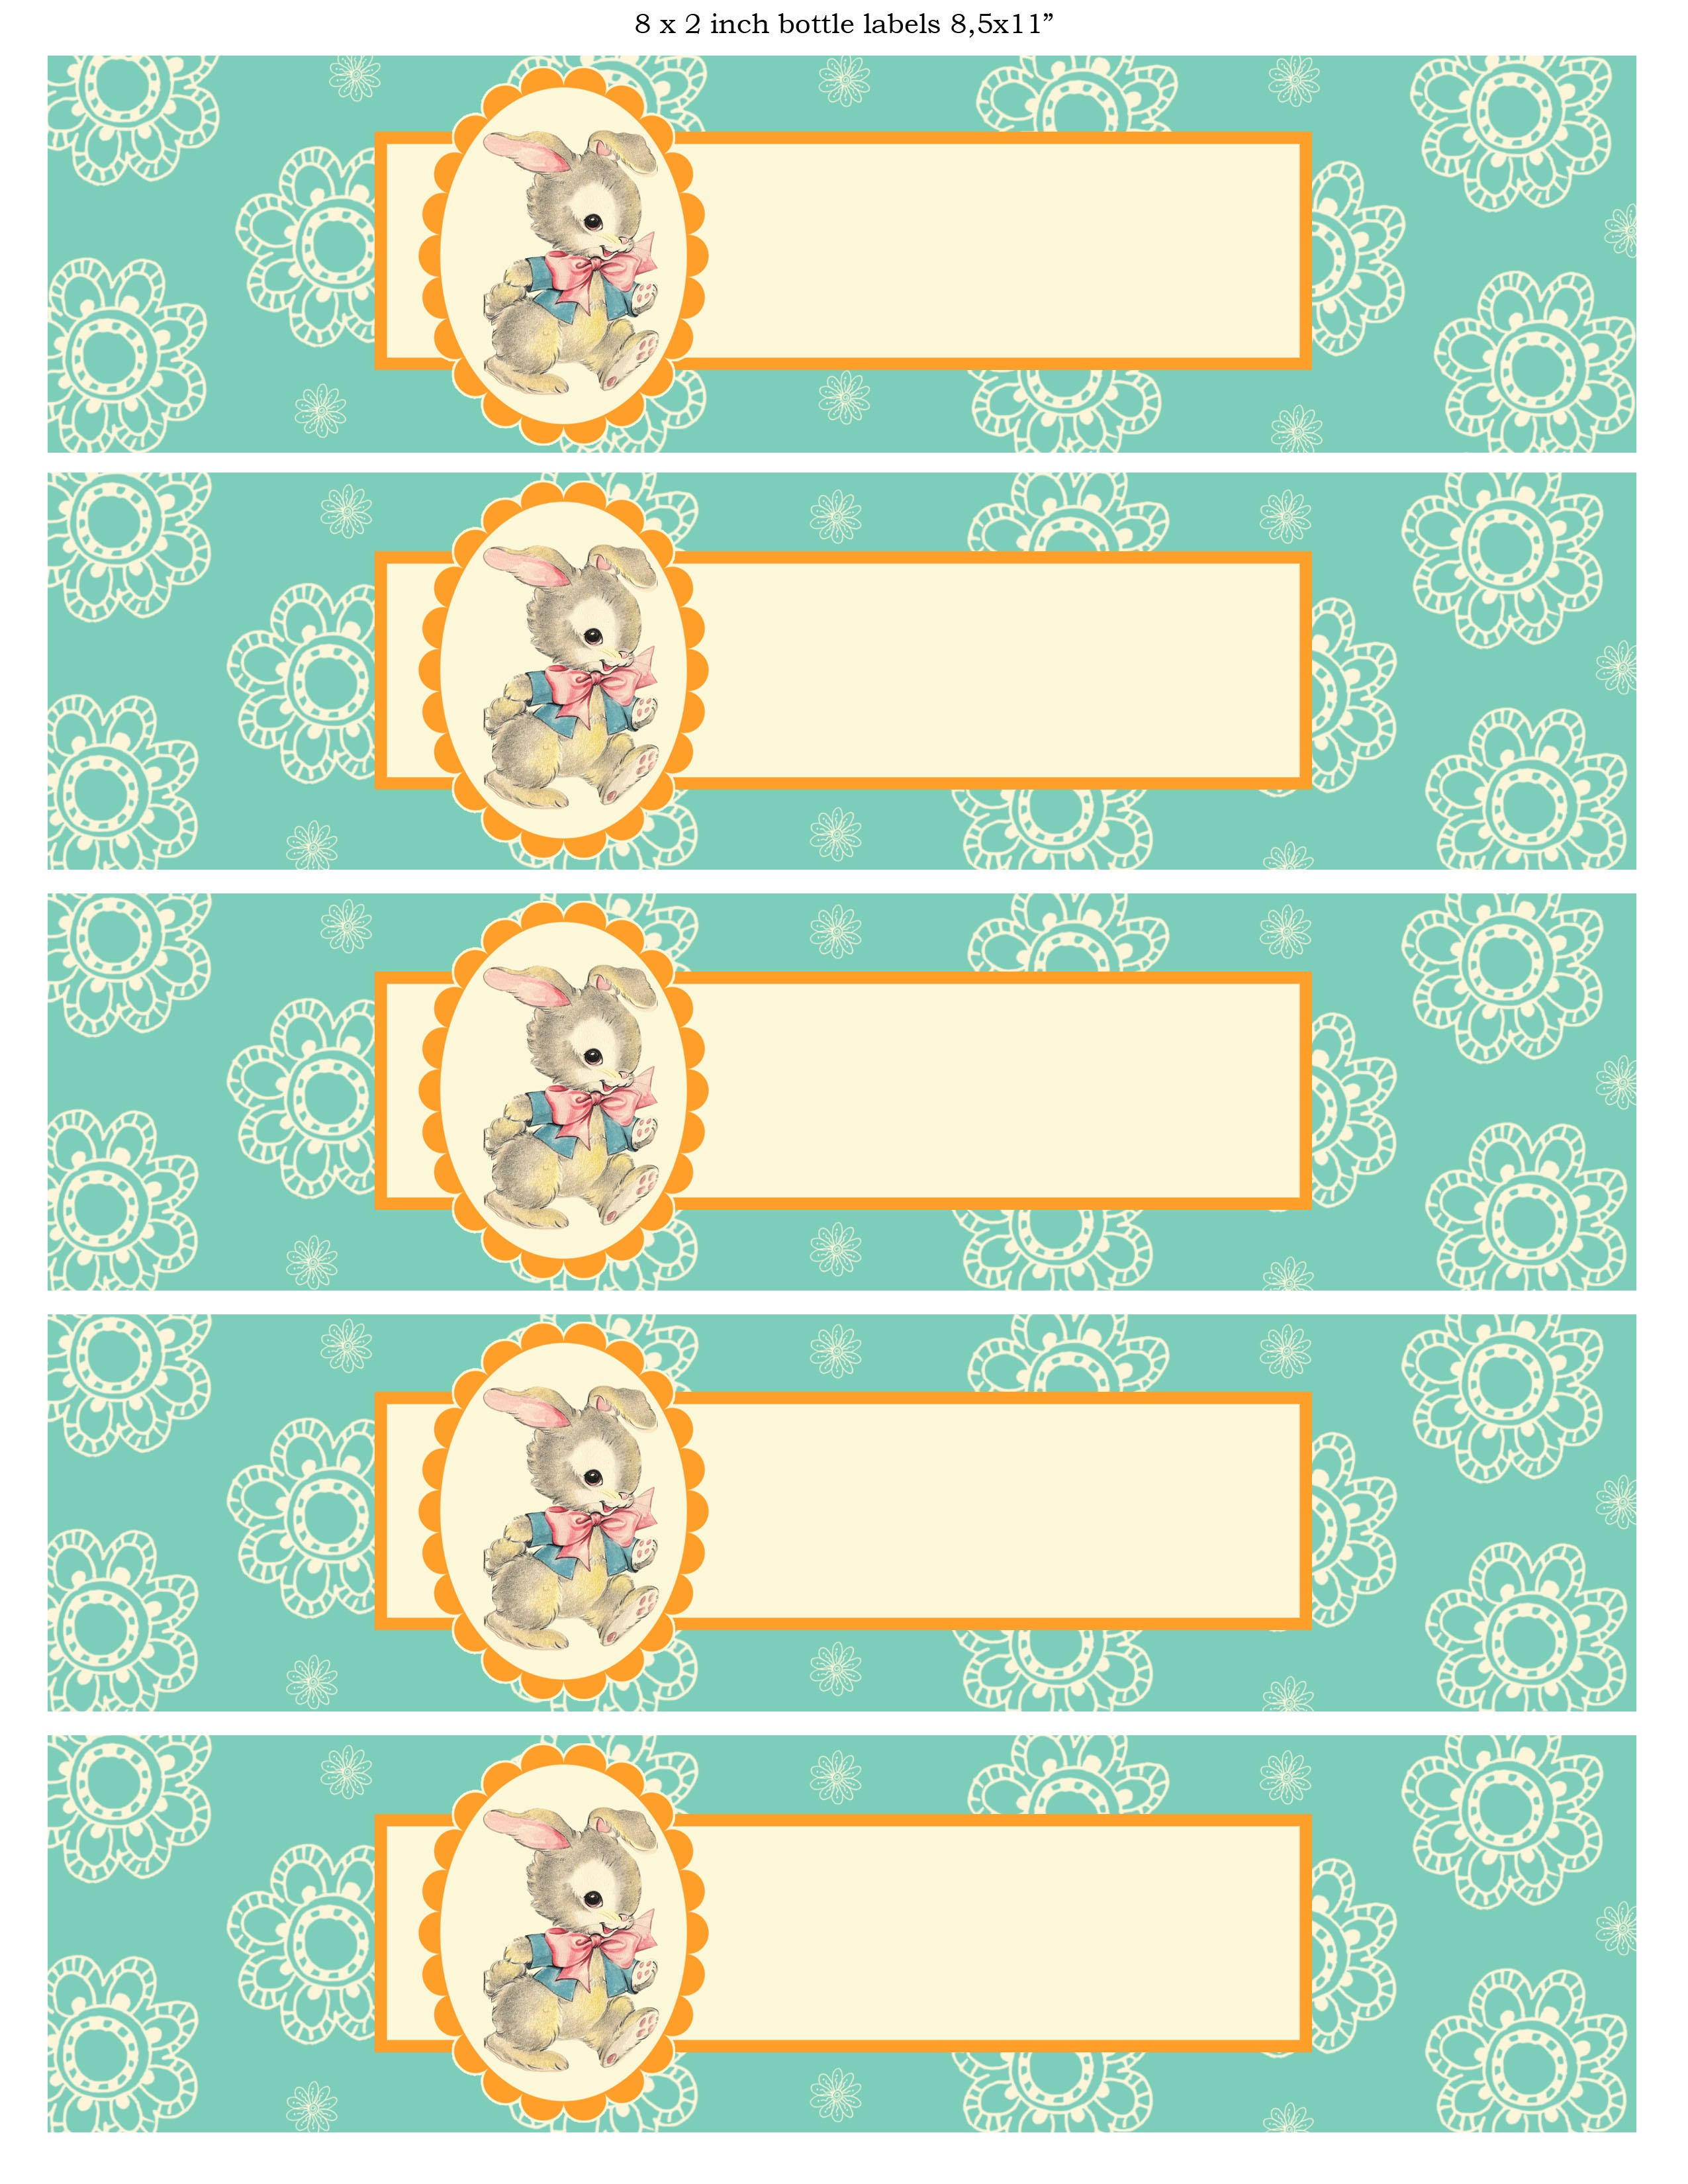 Free Printable Baby Shower Templates - Free Printable Baby Shower Label Templates